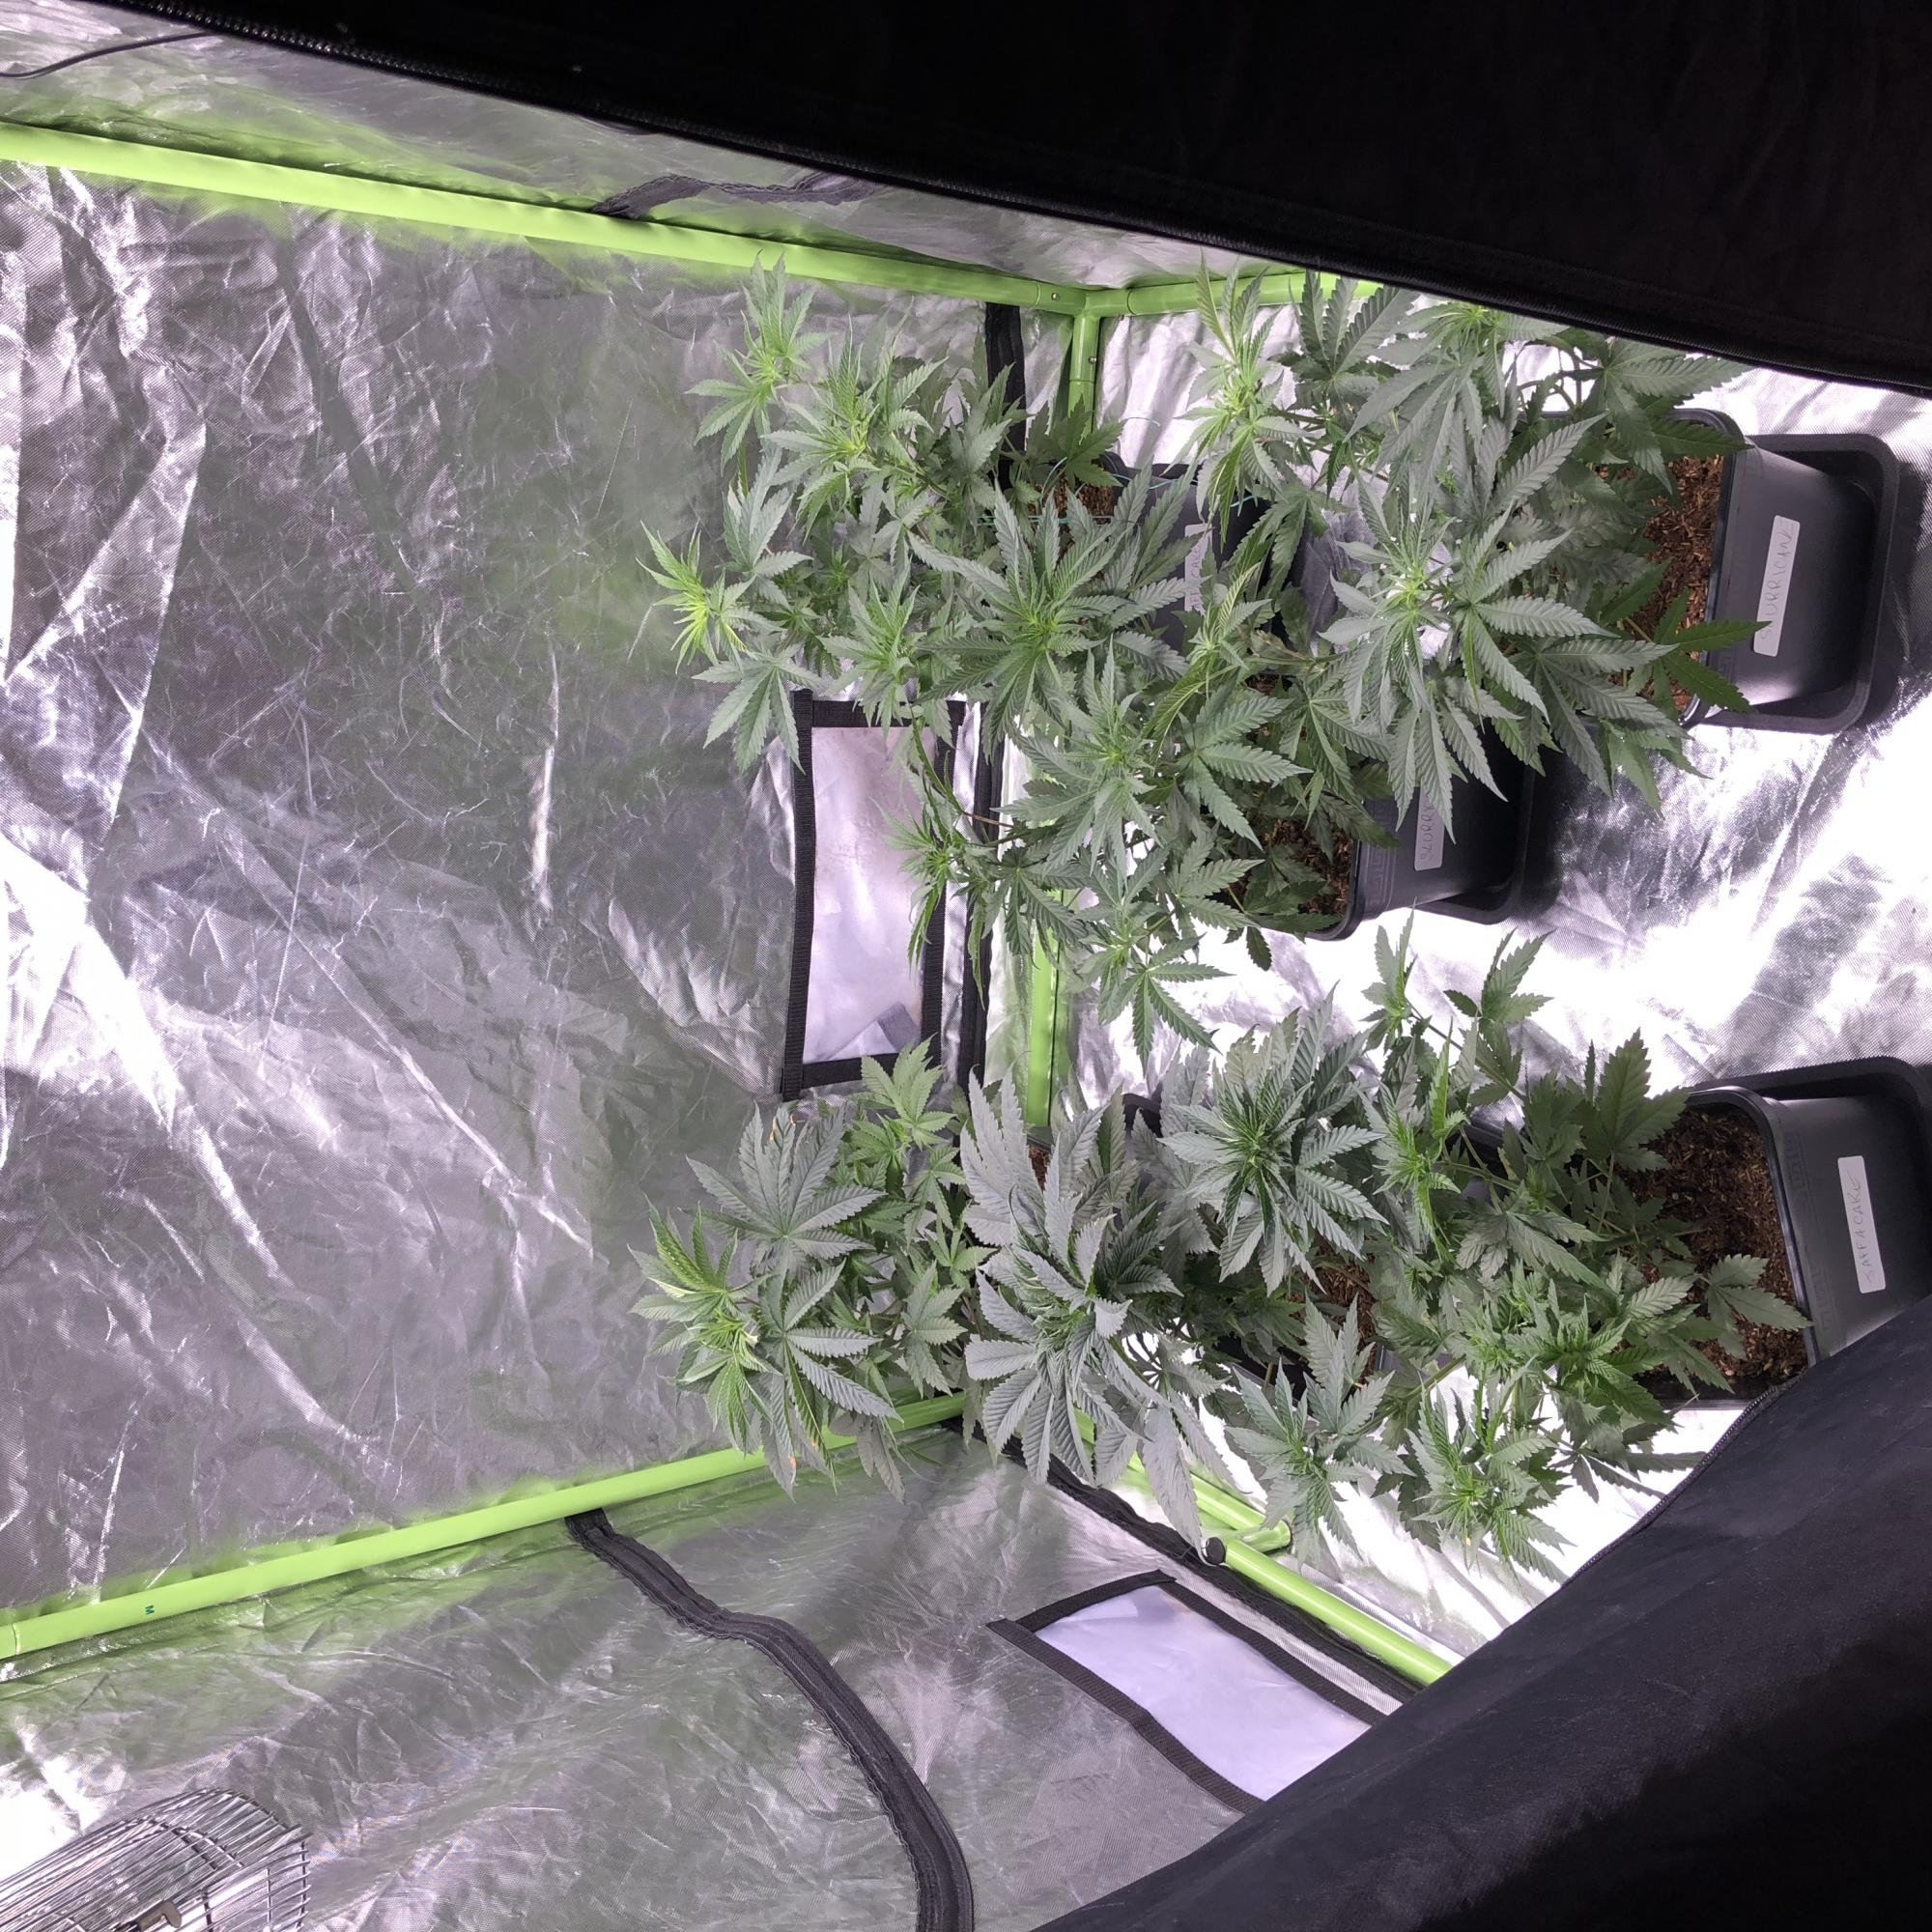 Slurricane Jaffa cake Remo Chemo soil grow - Grow Journals Indoor